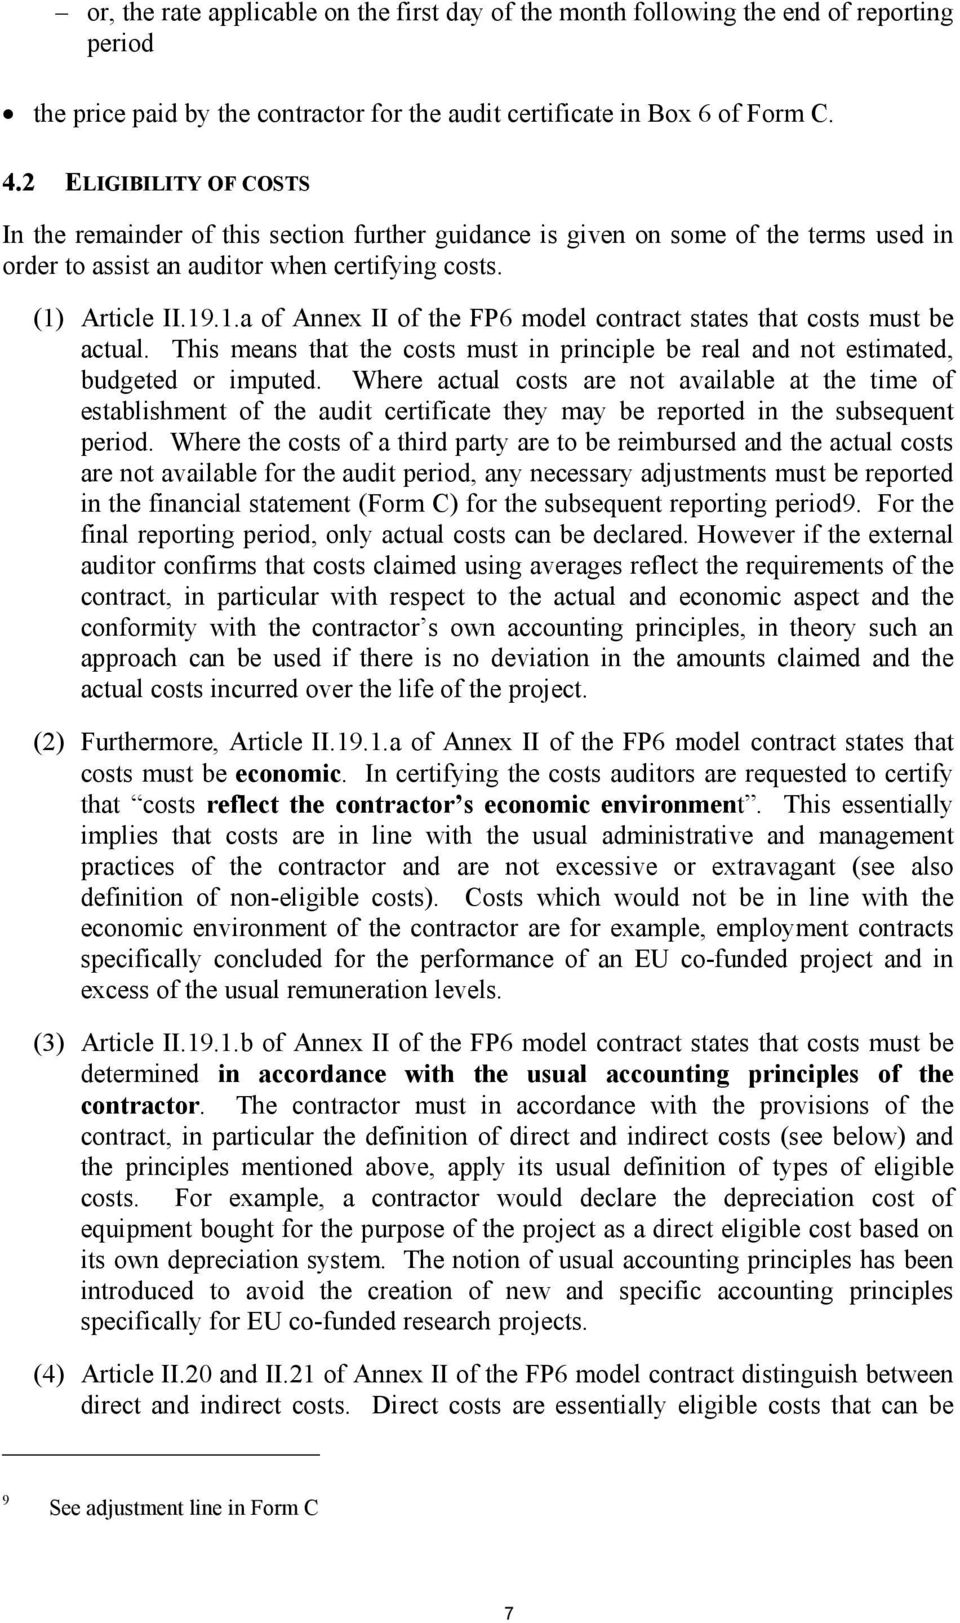 Article II.19.1.a of Annex II of the FP6 model contract states that costs must be actual. This means that the costs must in principle be real and not estimated, budgeted or imputed.